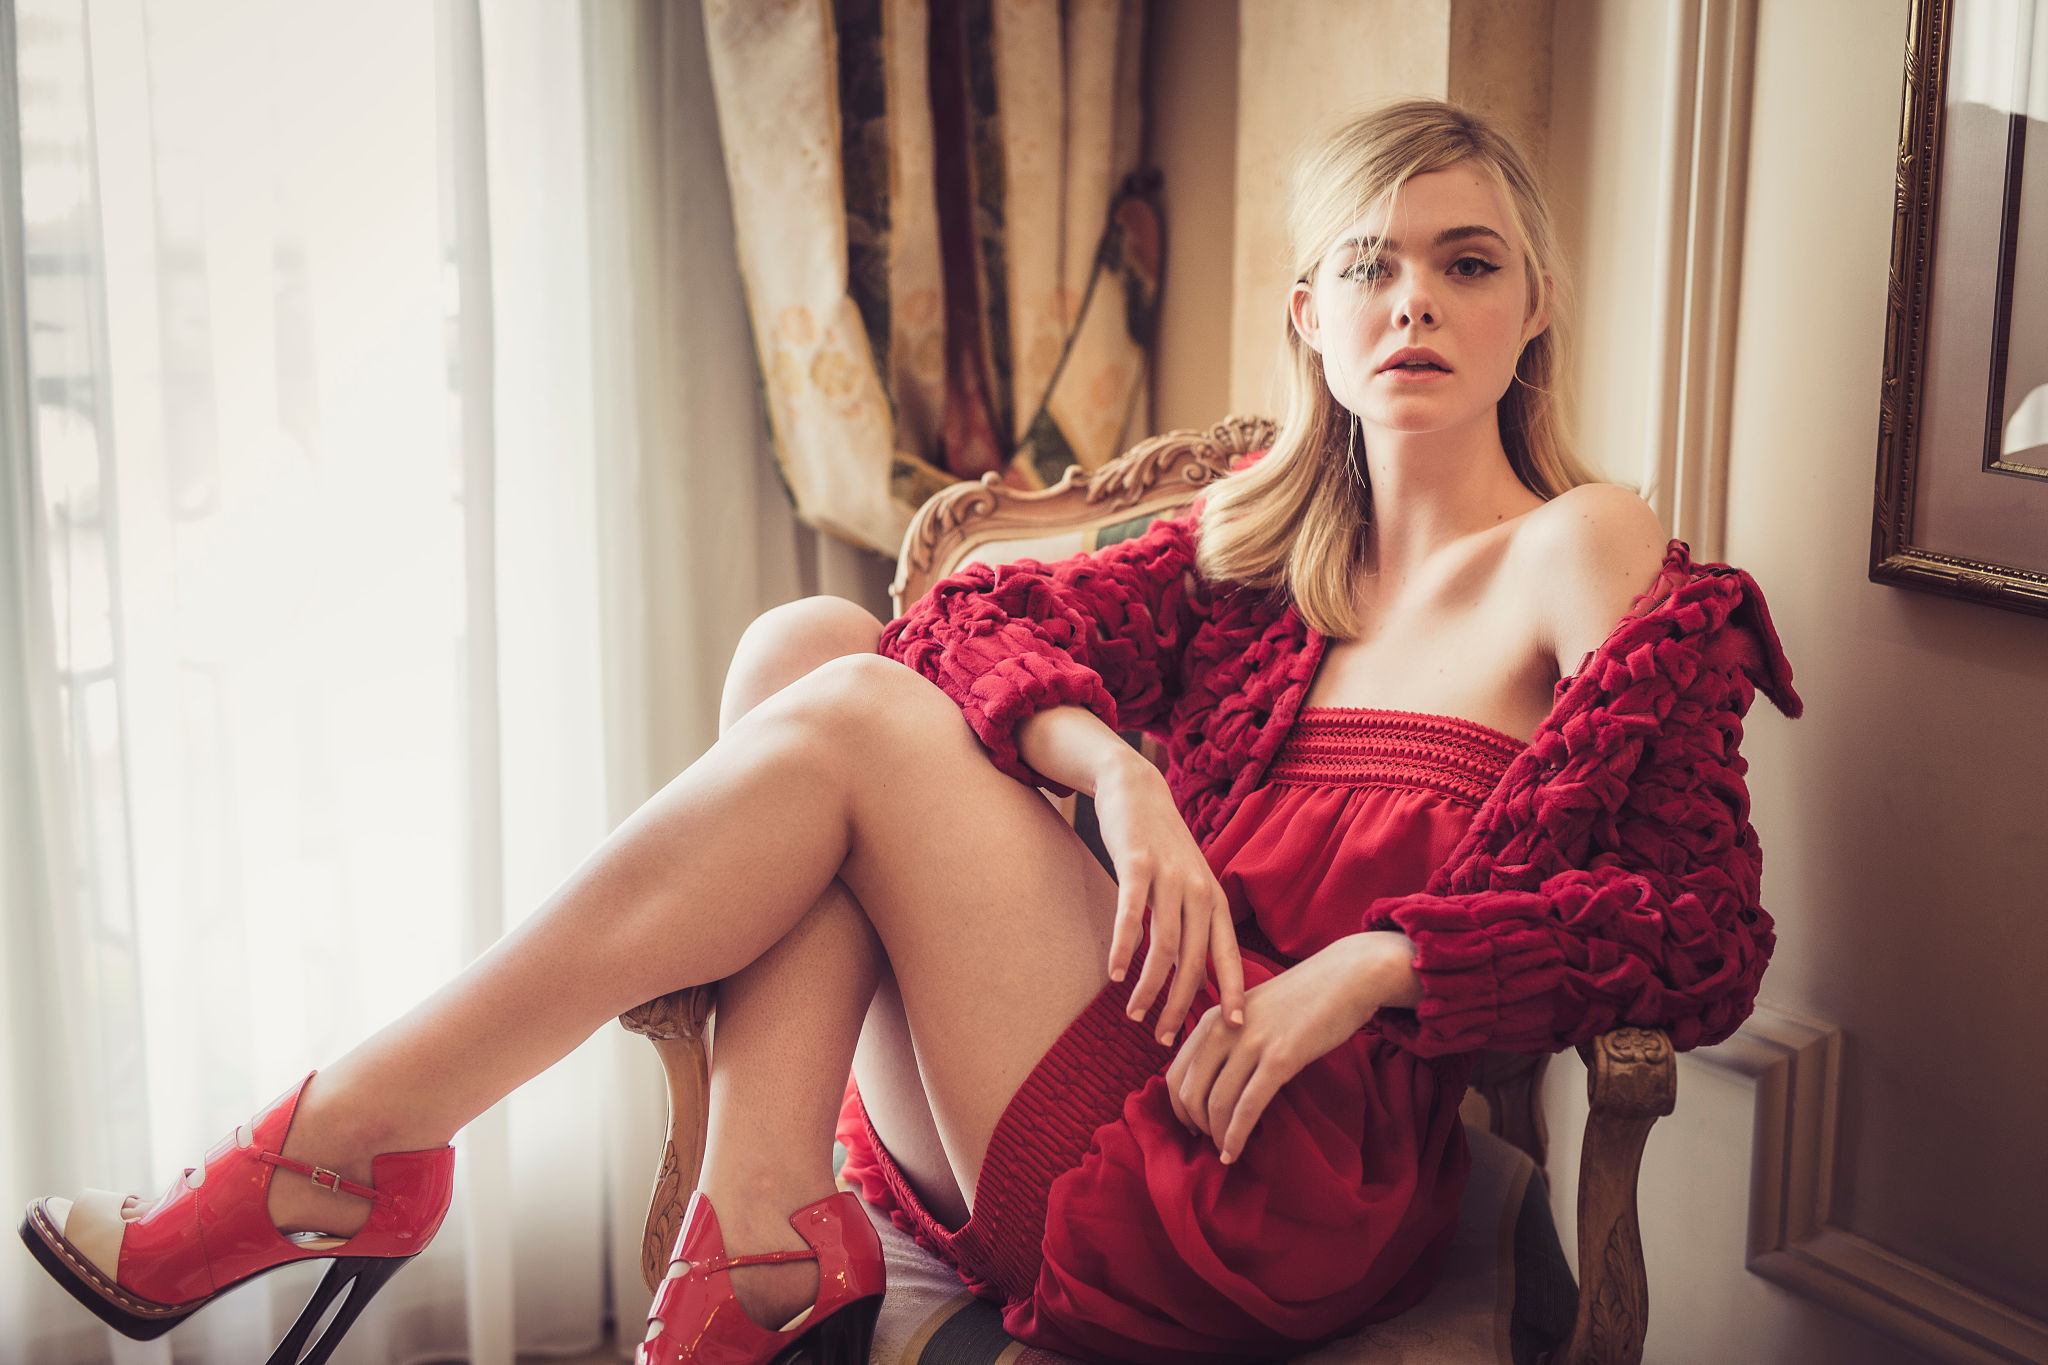 Elle Fanning red dress - Elle Fanning Net Worth, Family, Movies, Private Life, Pictures and Wallpaper